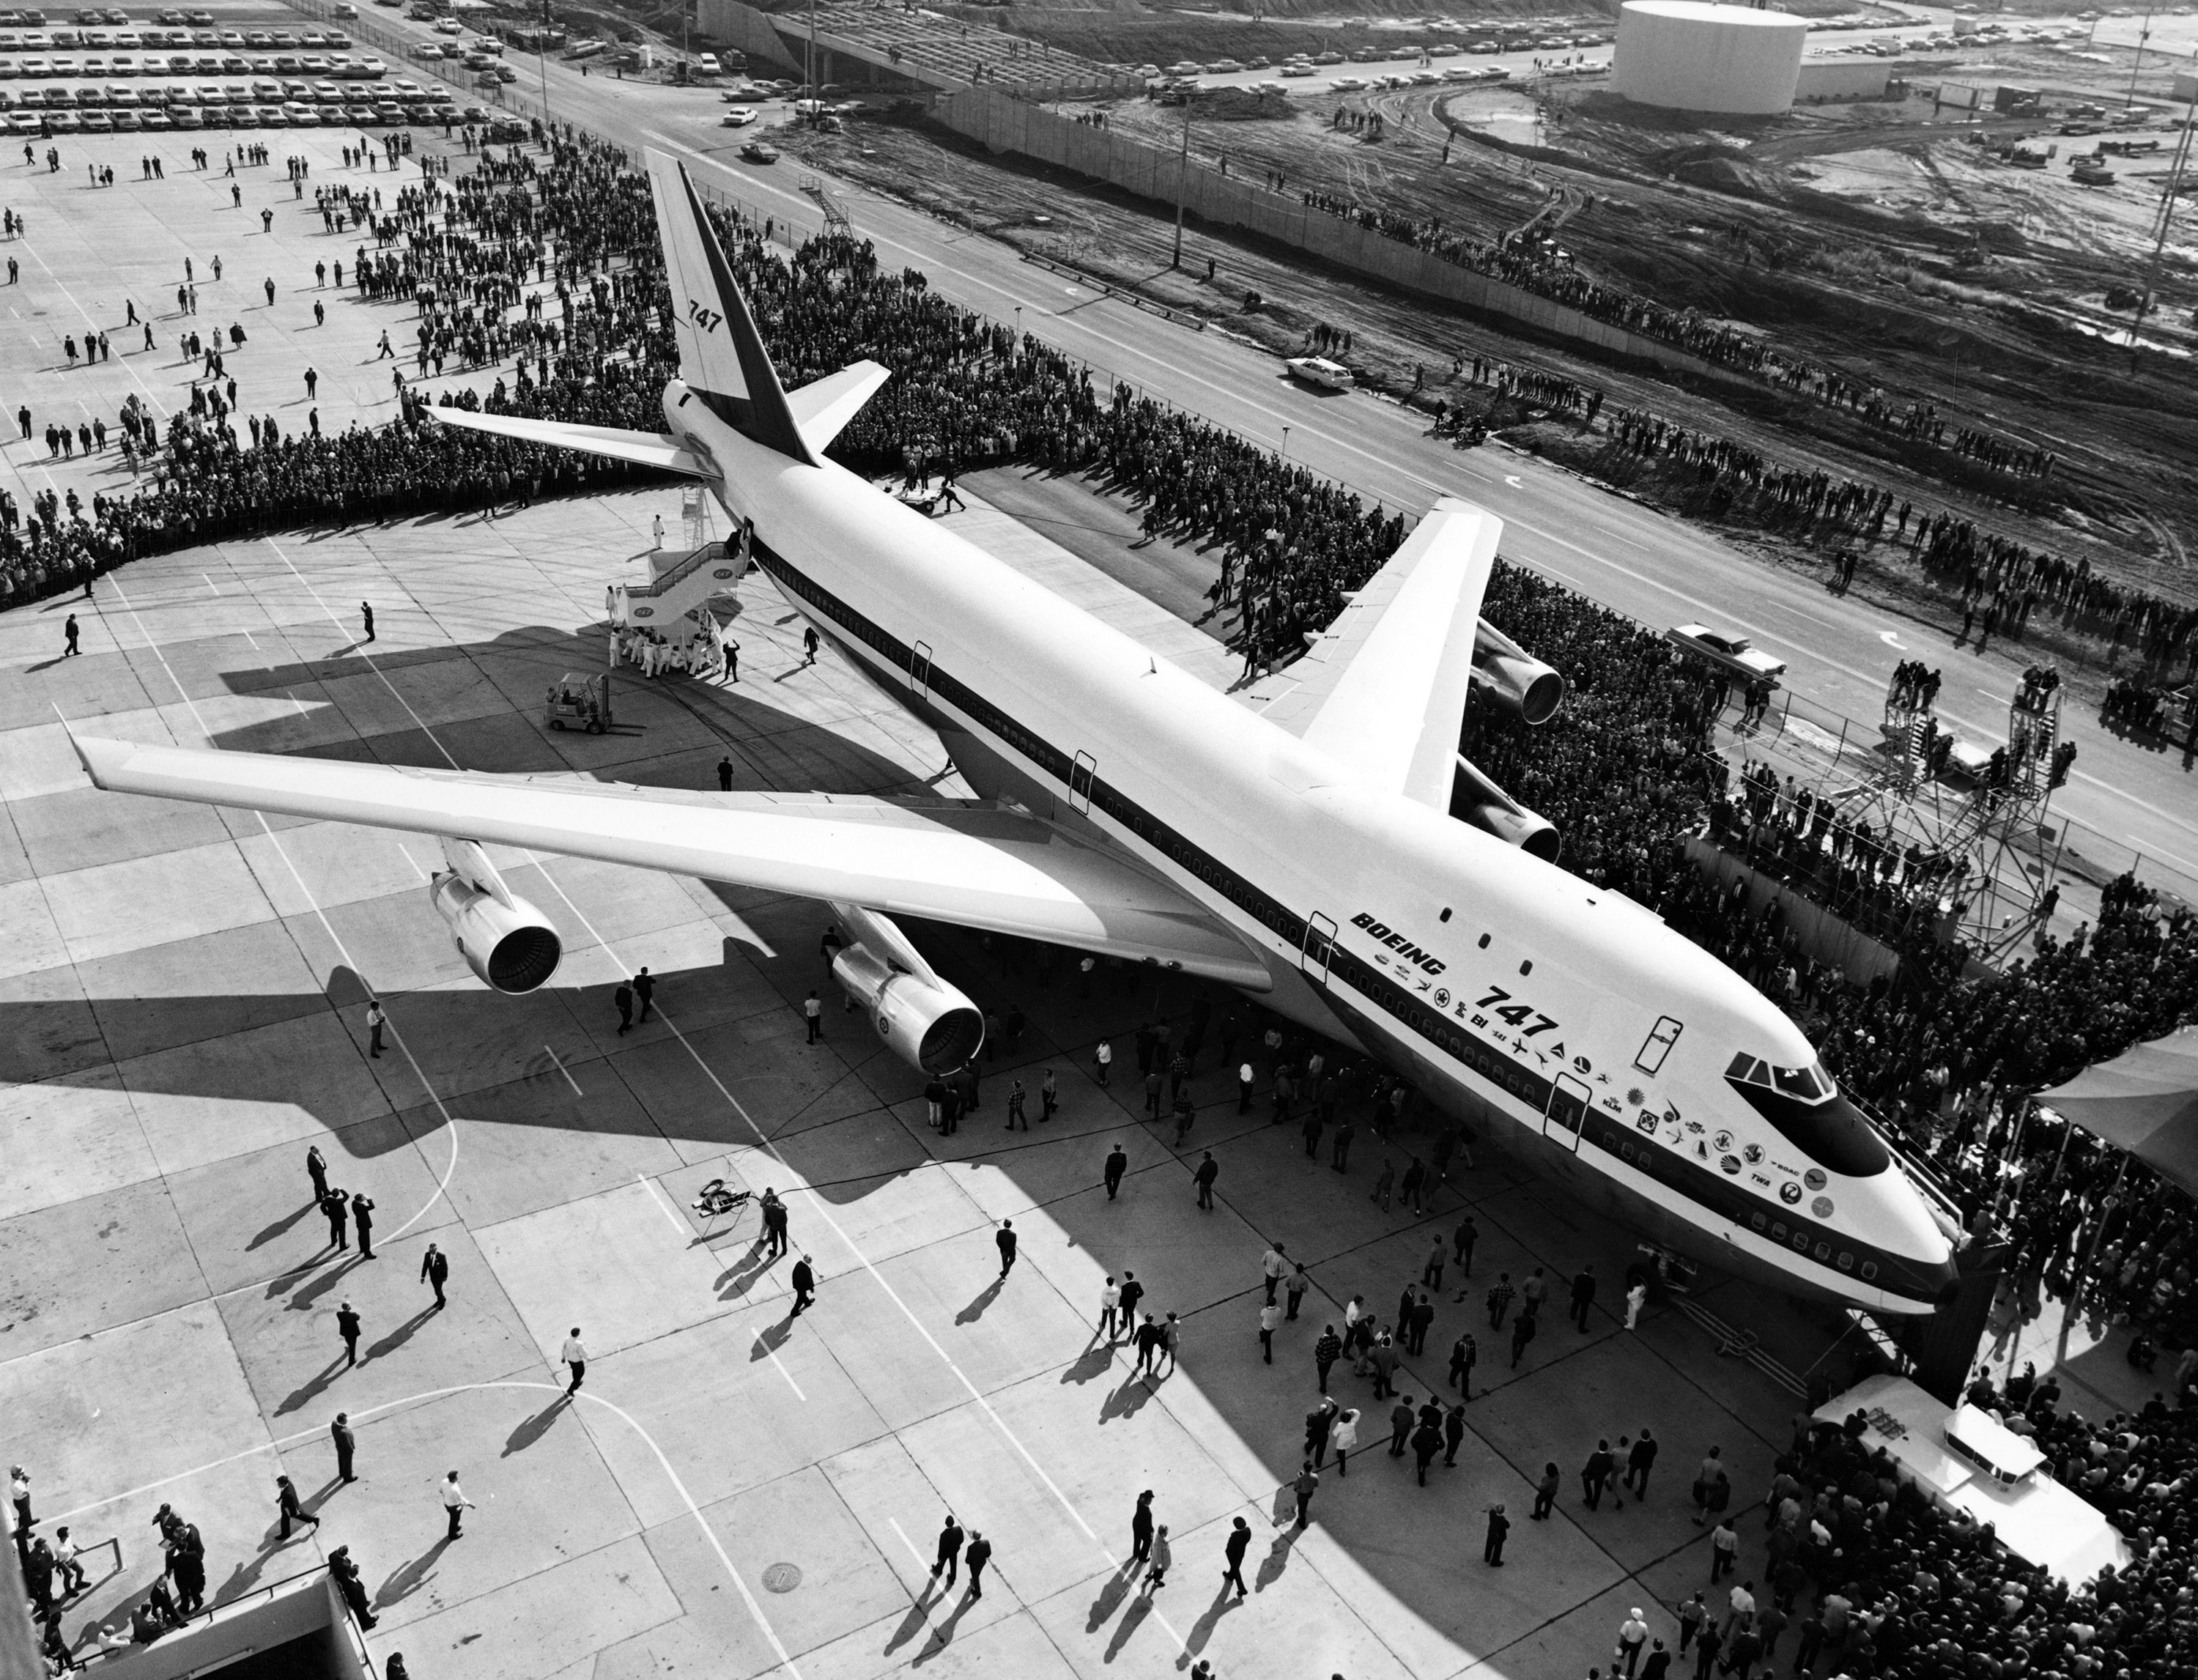 Time could be running out for the 747